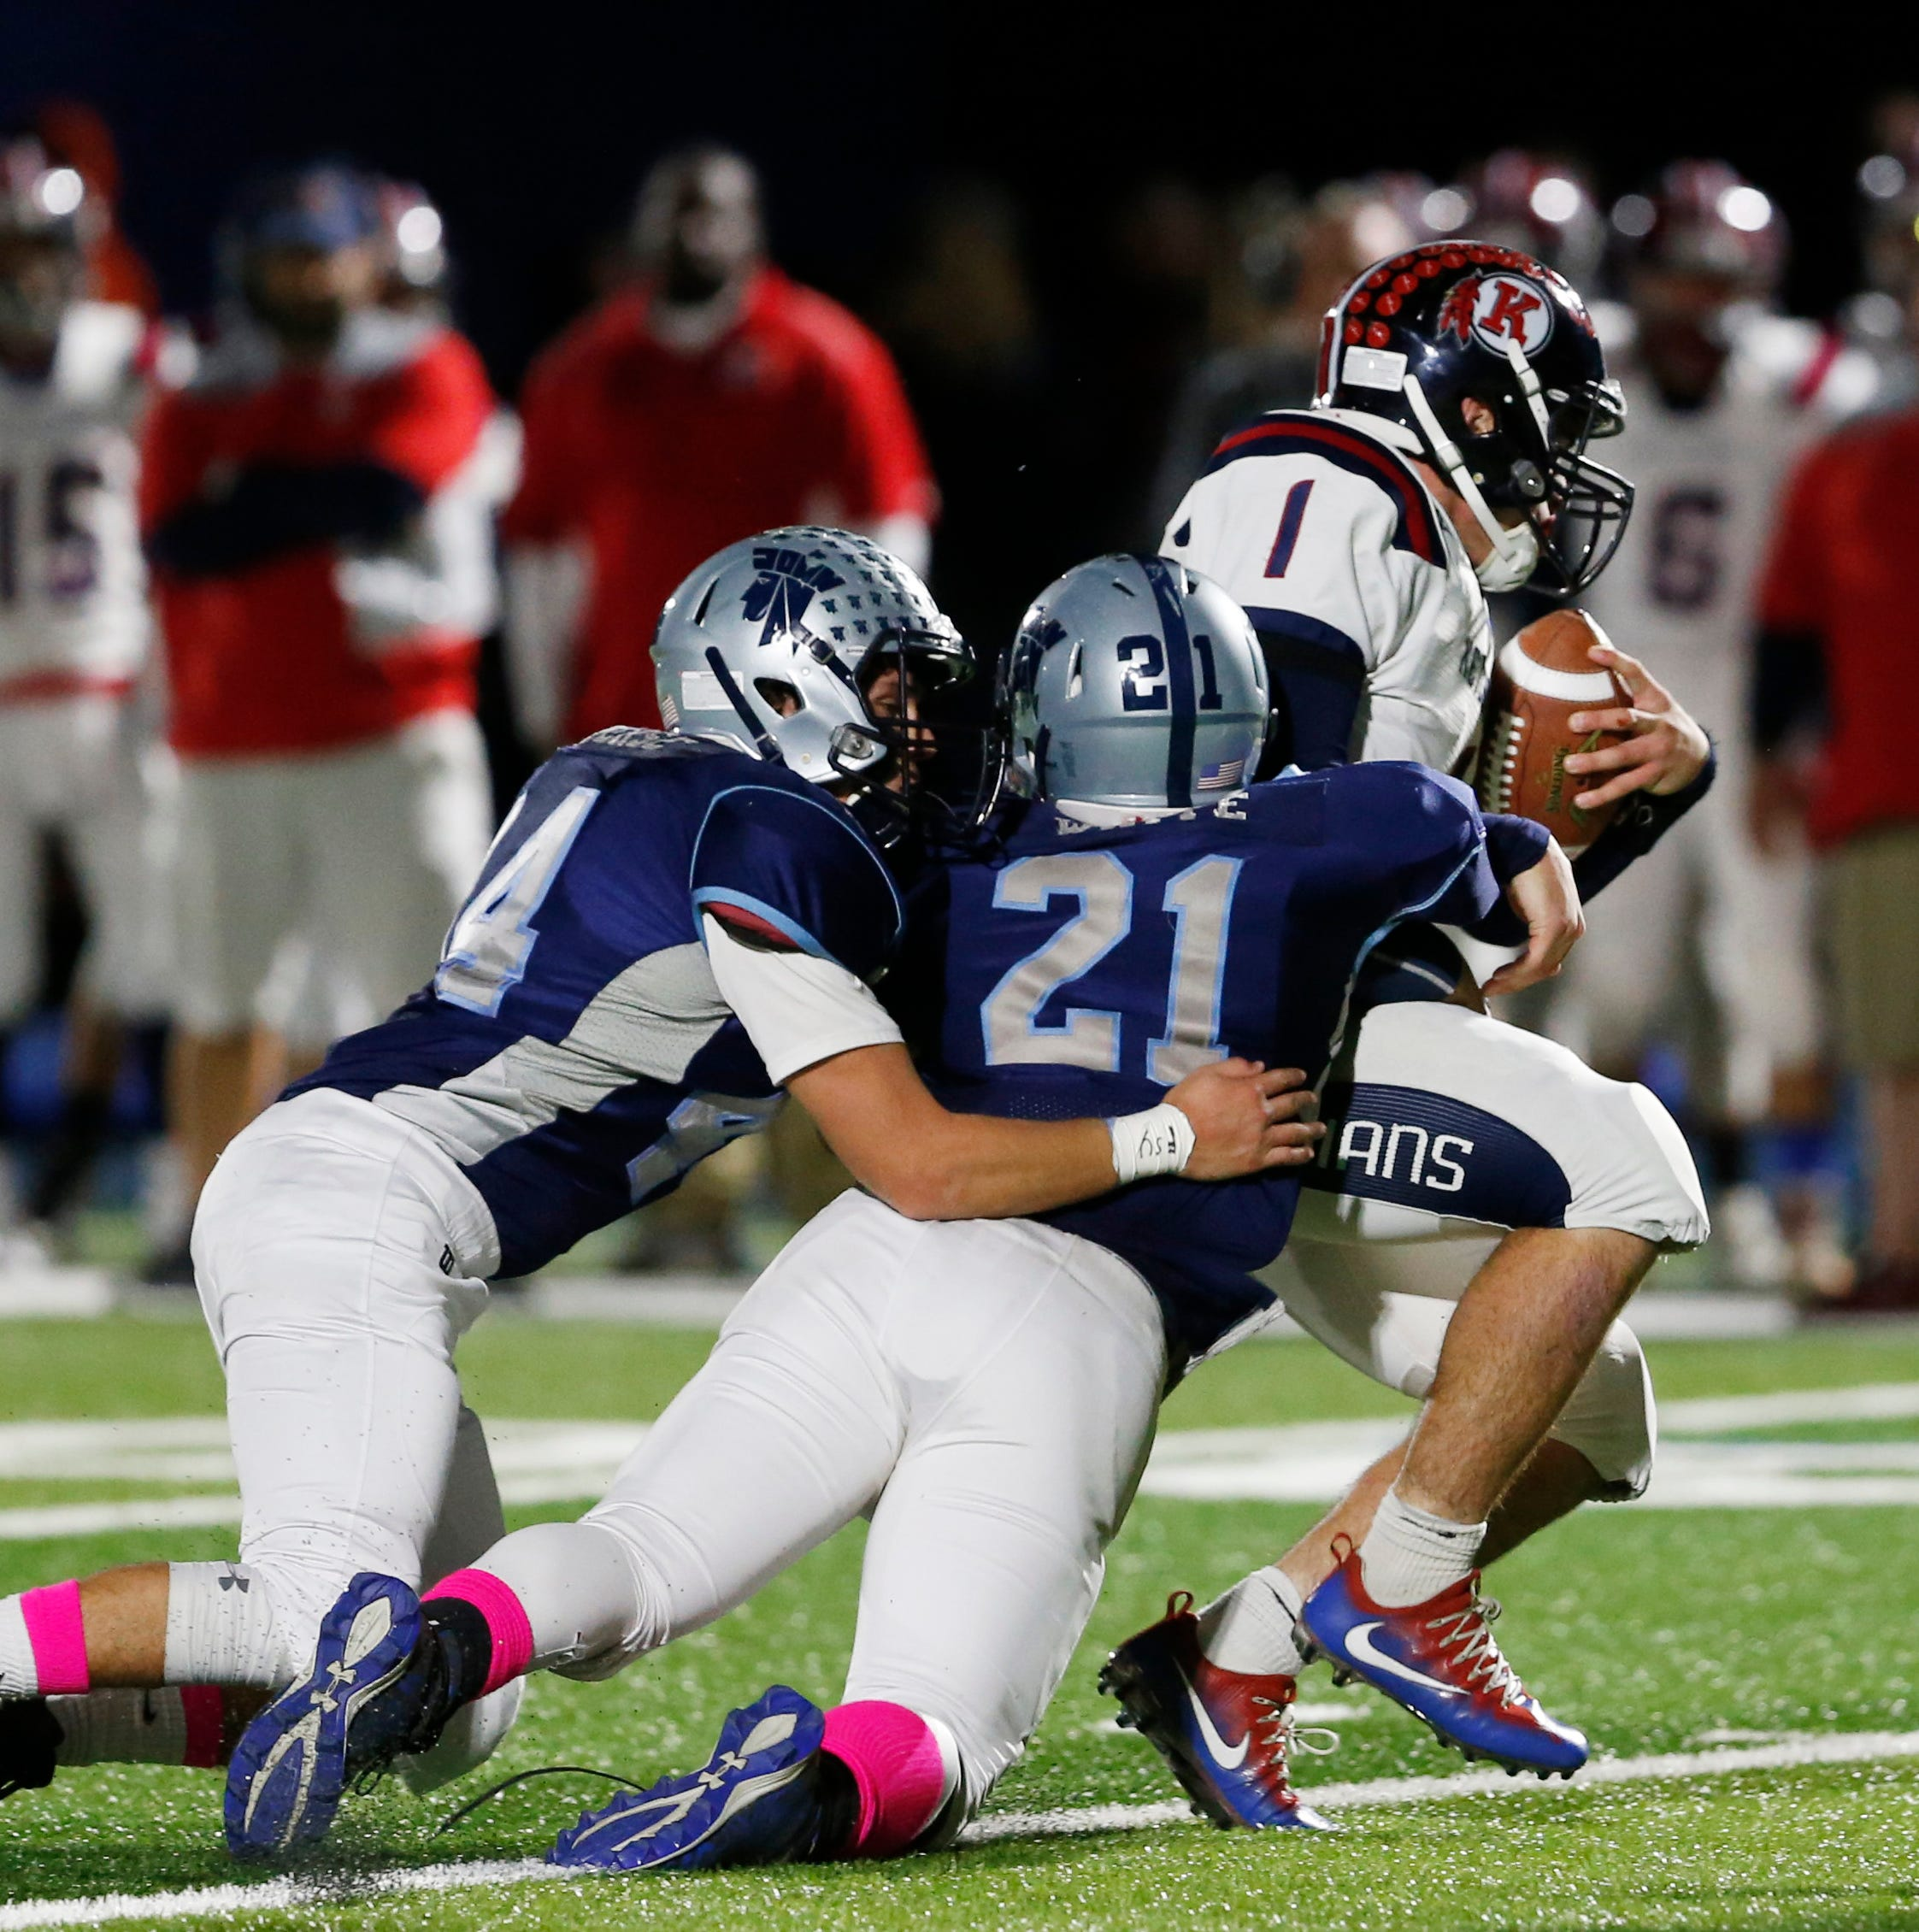 Coronation: Patriots perfect at Ketcham's expense as postseason looms